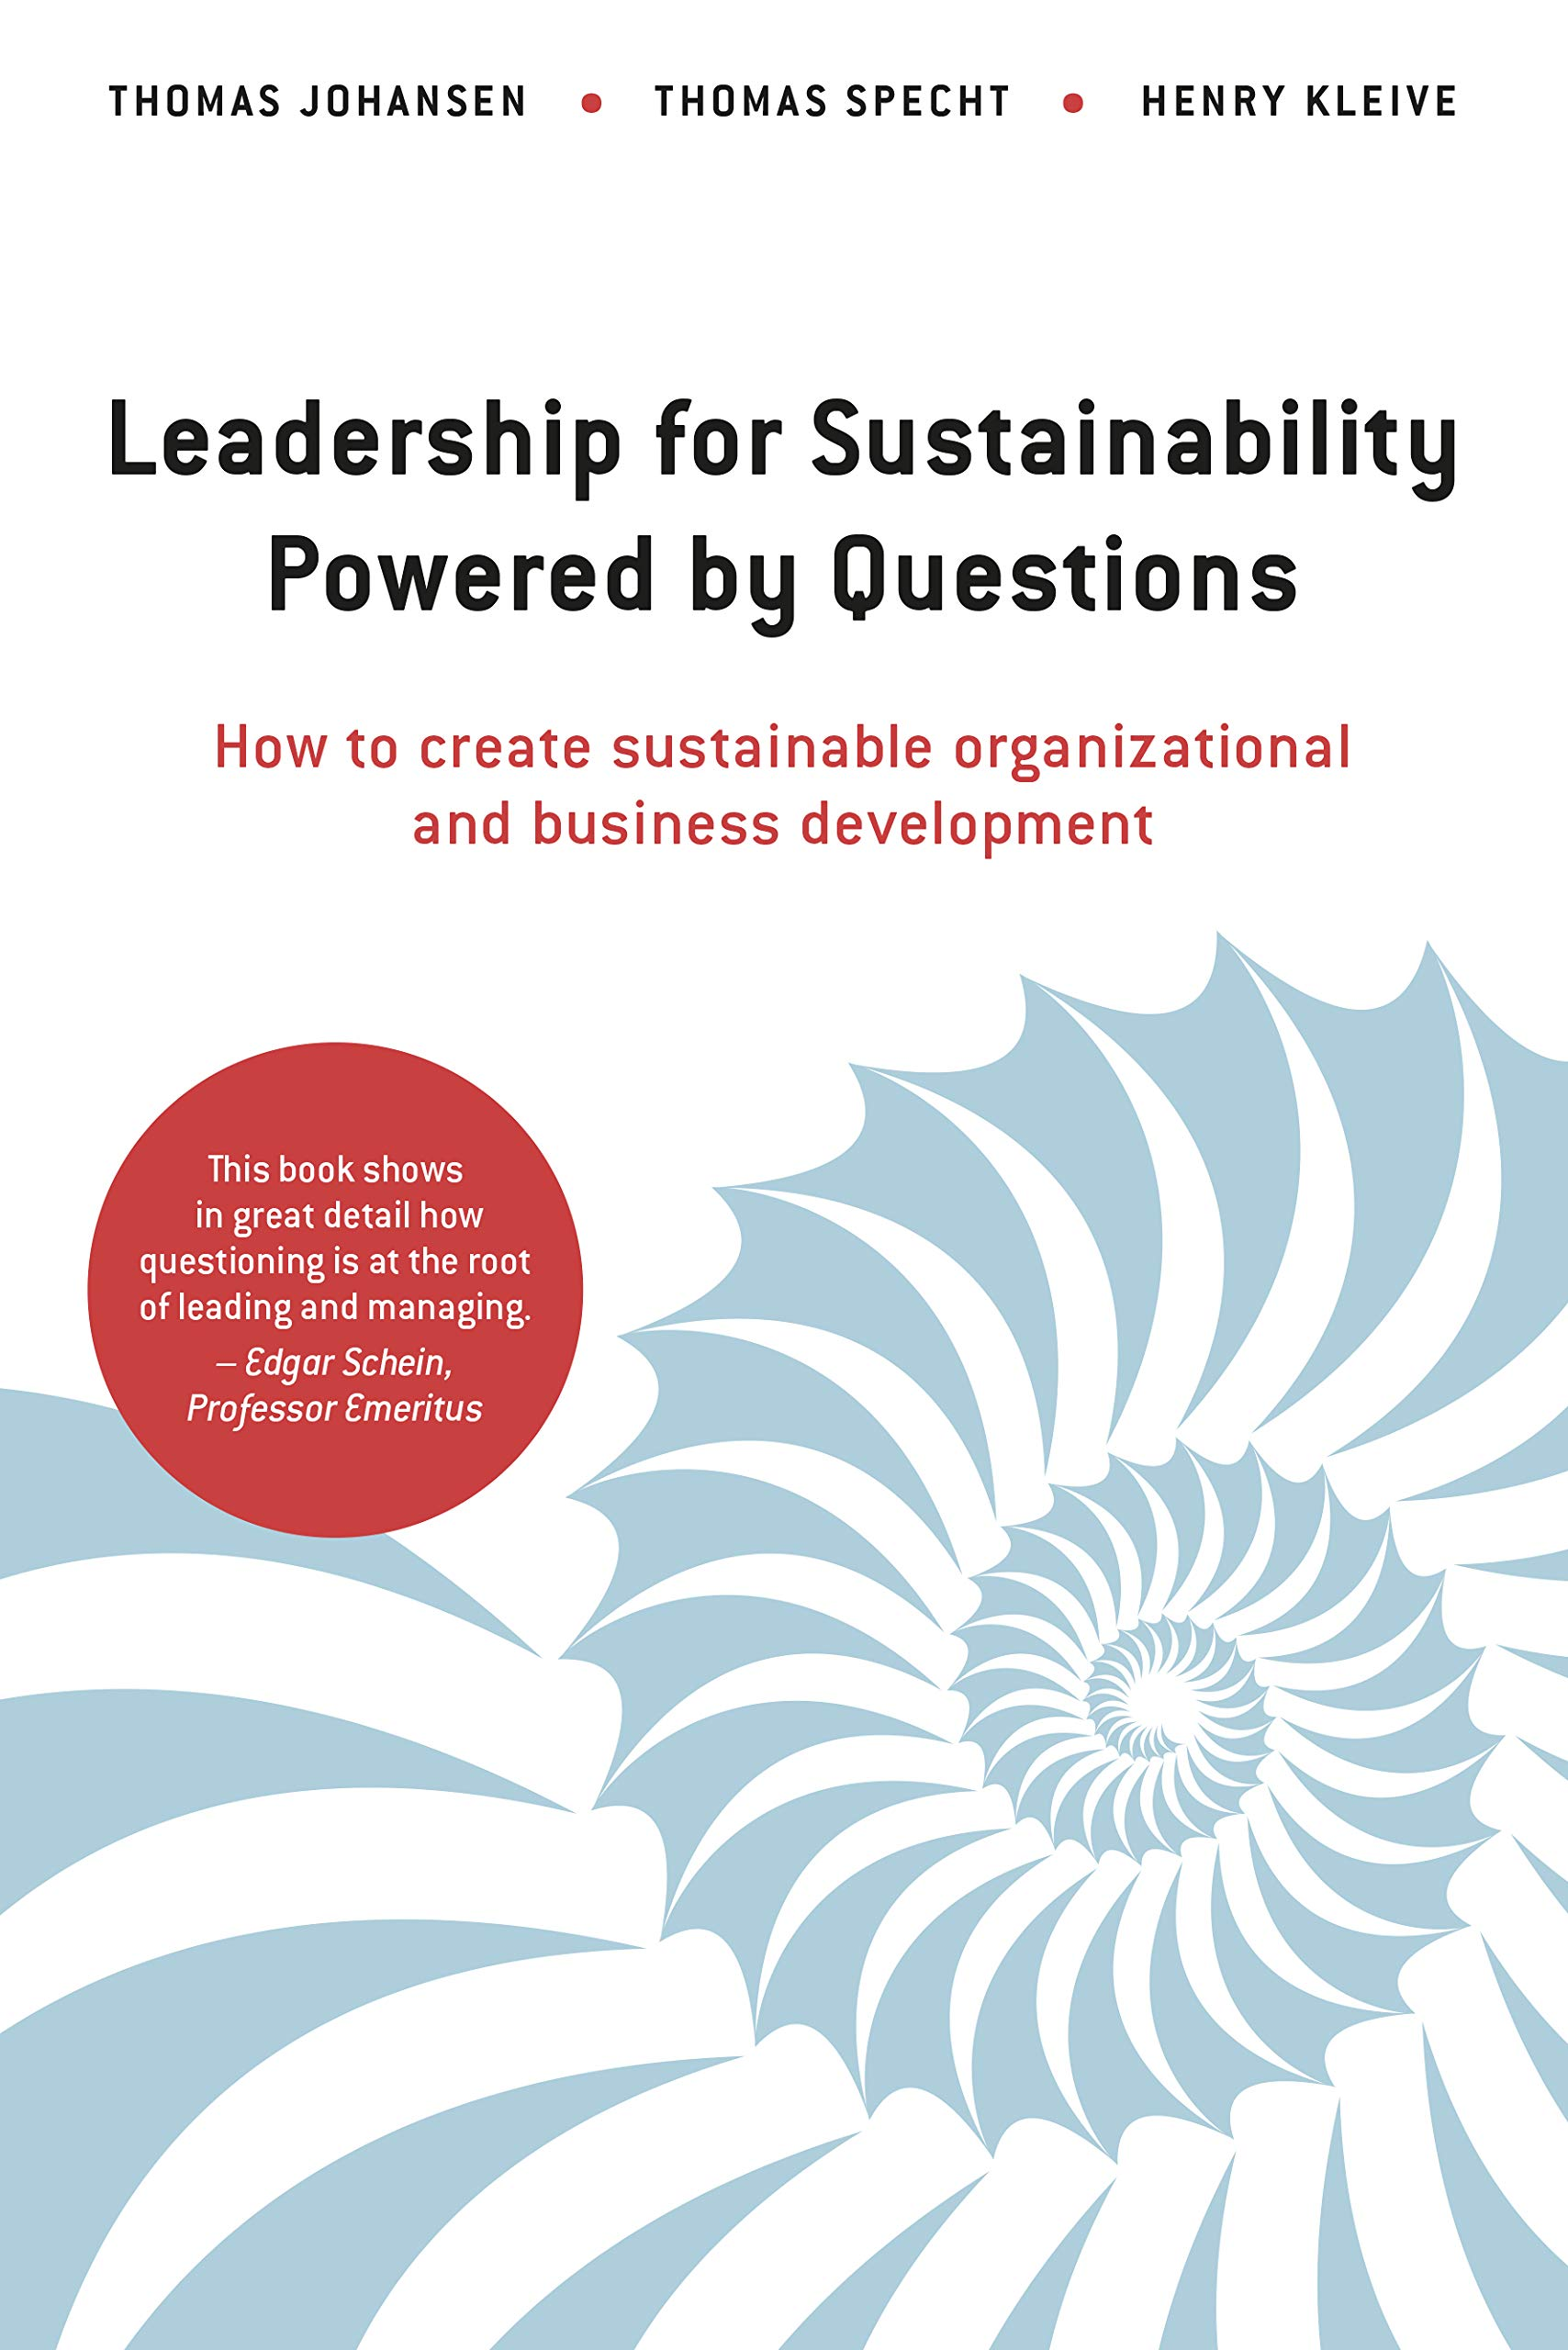 Leadership for Sustainability - Powered by Questions: How to create sustainable organizational and business development